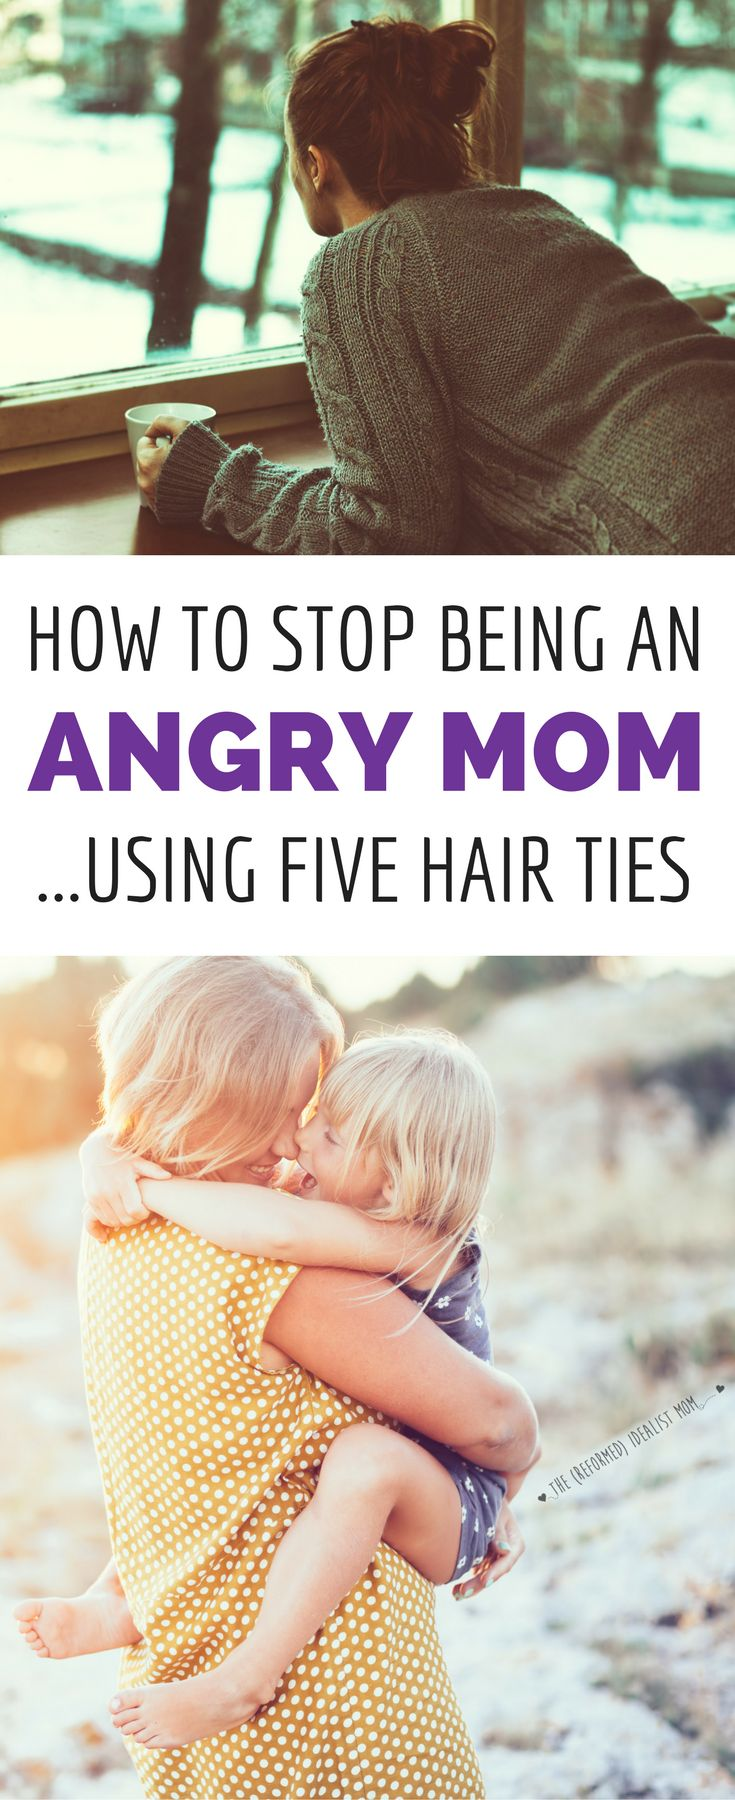 Angry mom? This simple trick using 5 hair ties will make you go from angry mom to happy mom. And the BEST part is how your kids will react! When you're struggling with your temper, this will get you back on track to enjoying motherhood. via @kellyjholmes